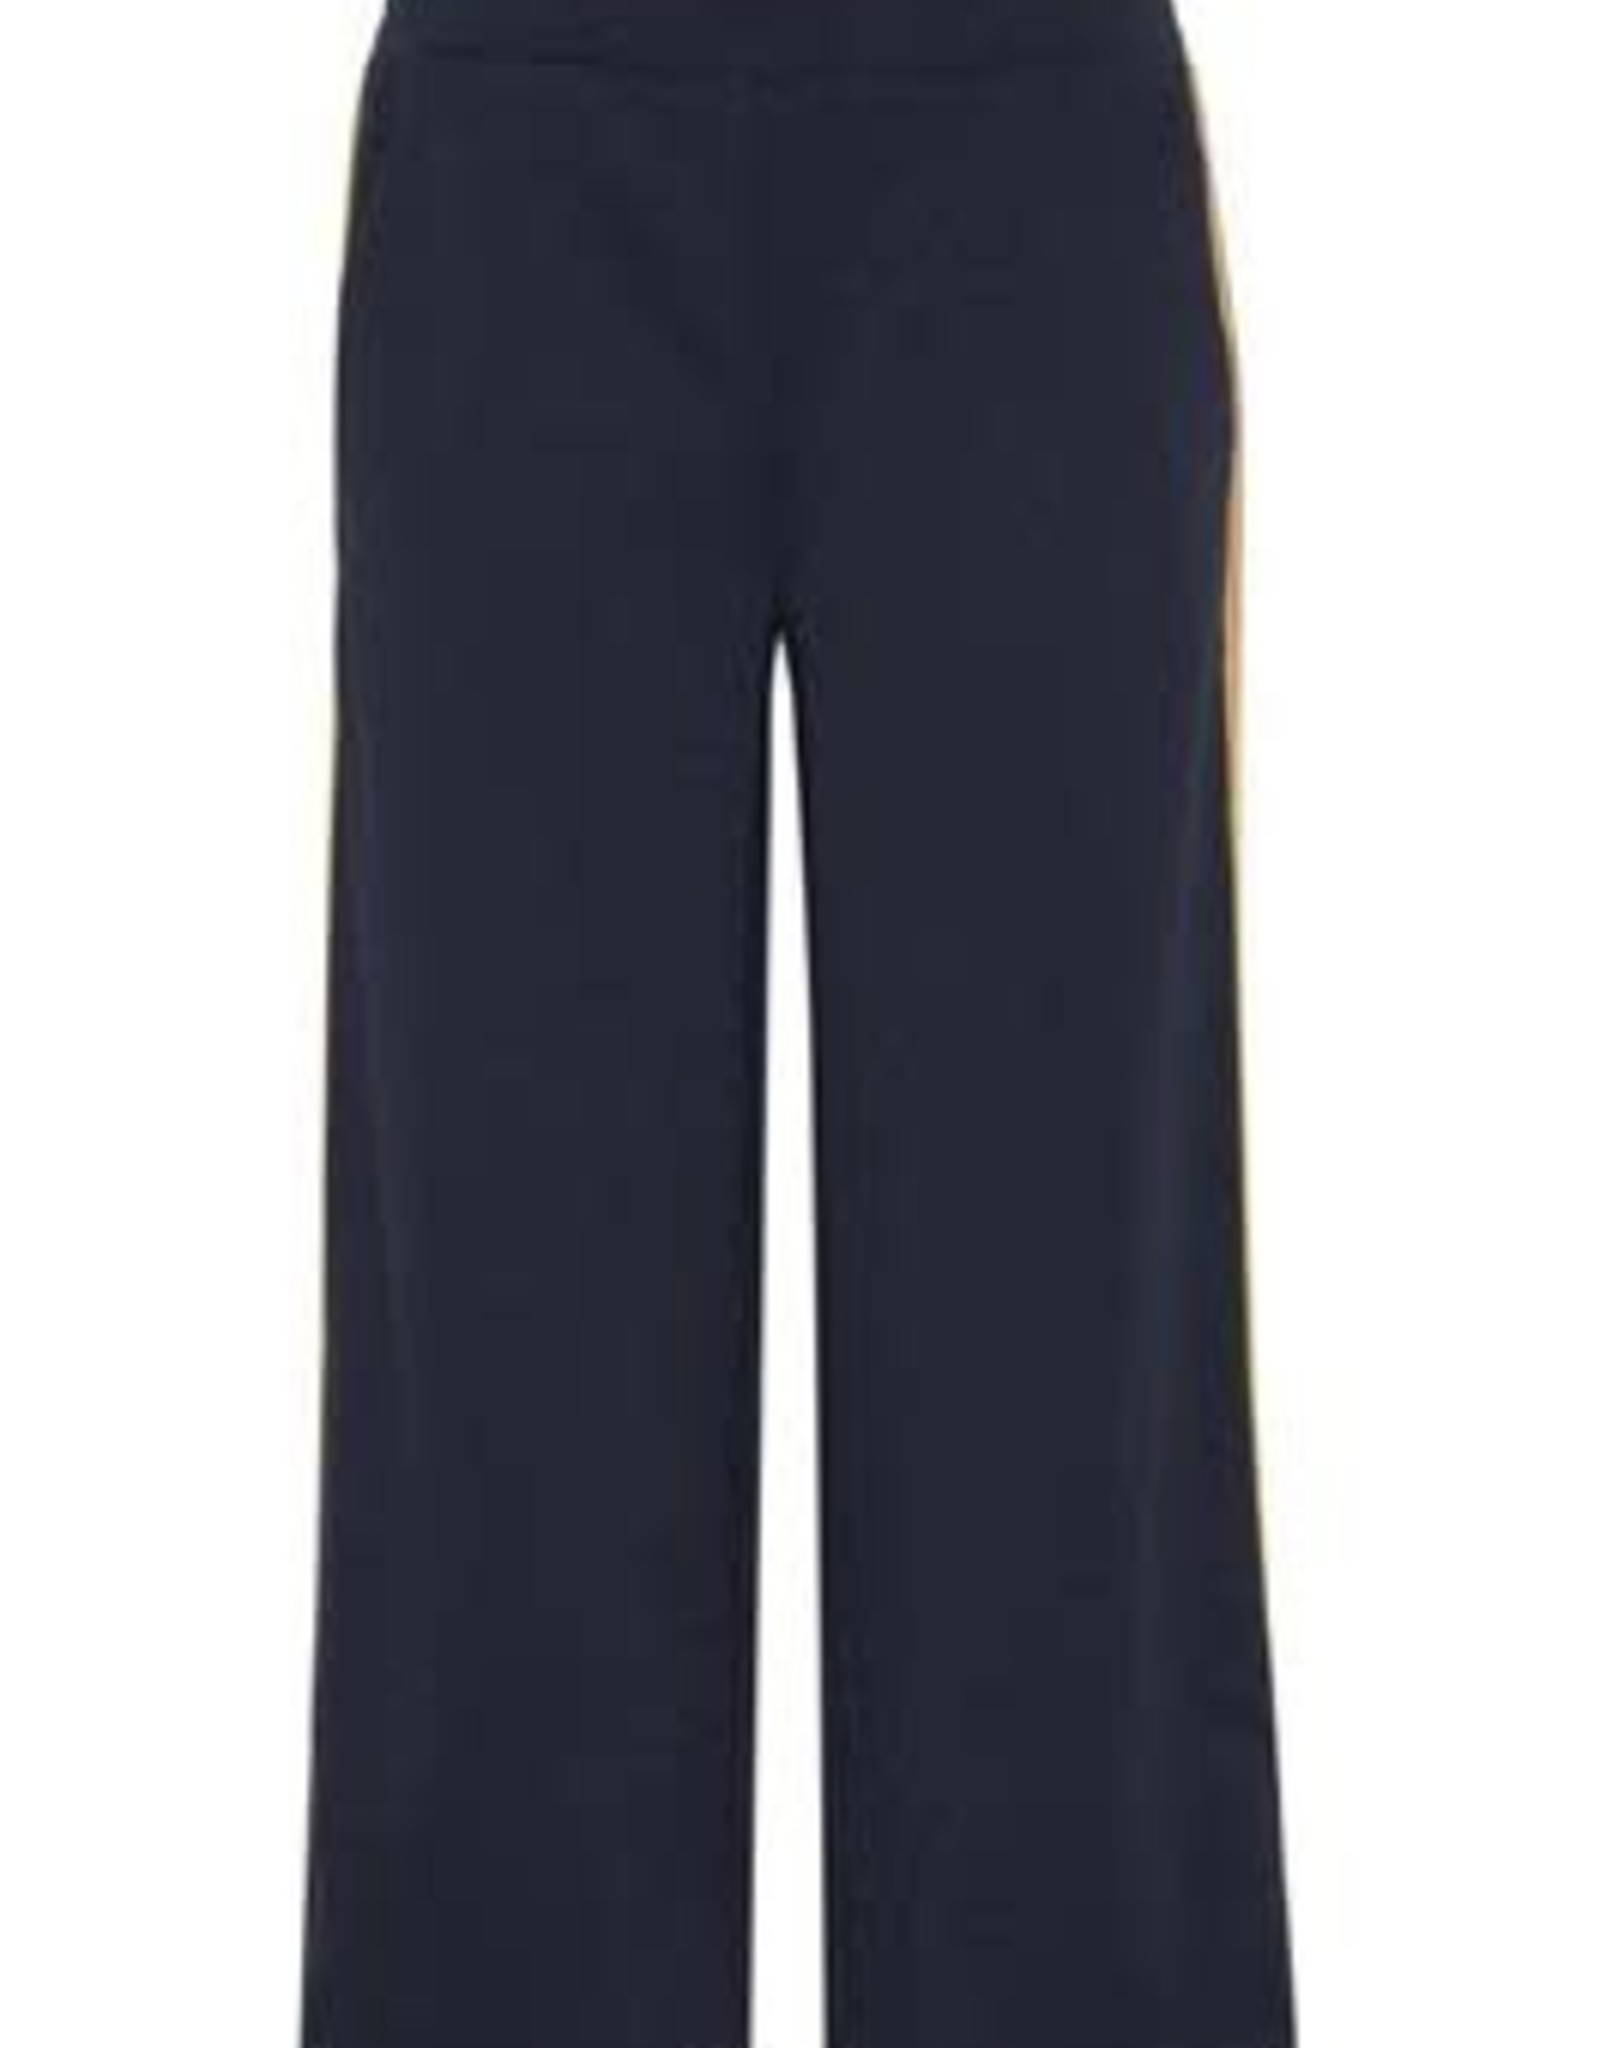 Ichi ICHI Ihkate Wide pants 5